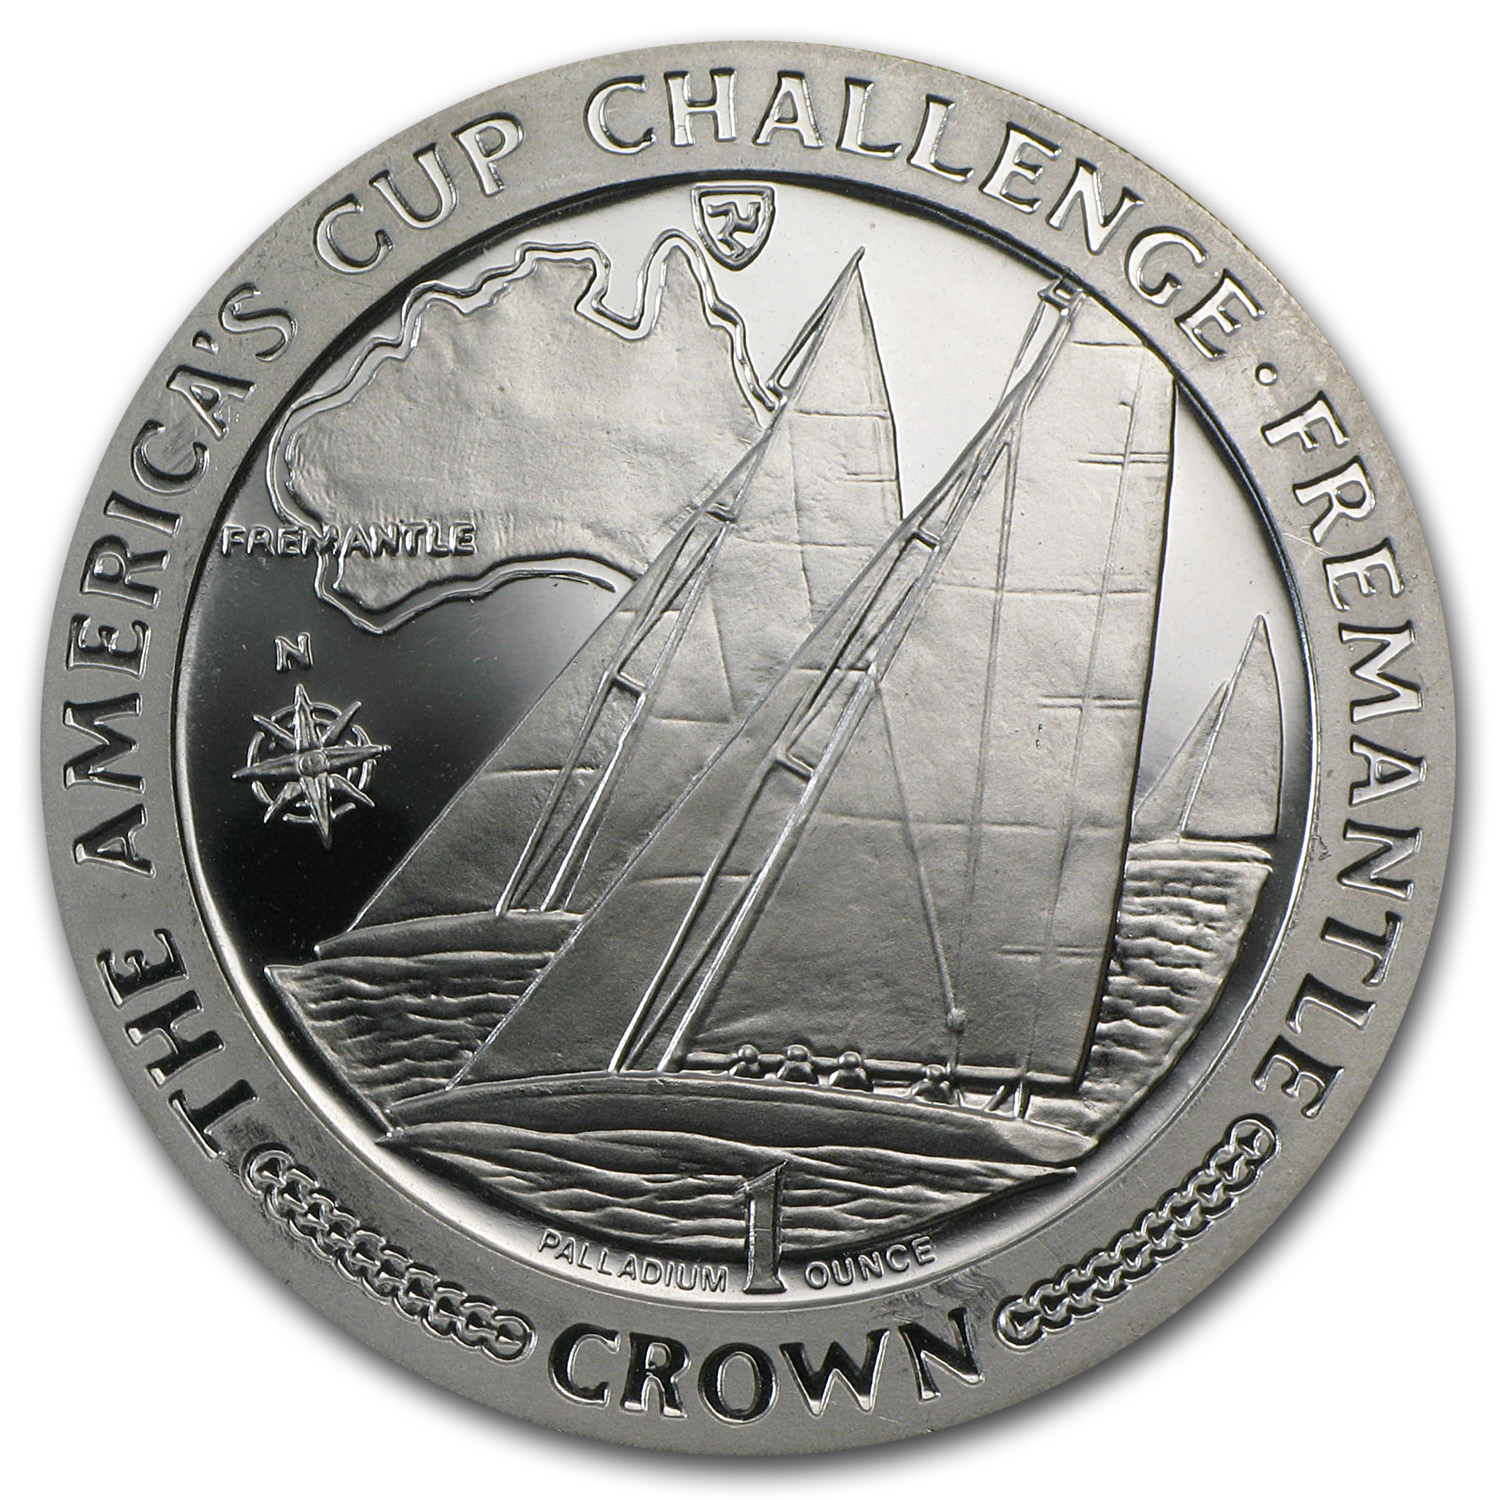 1987 Isle of Man 1 oz Proof Palladium America's Cup Challenge